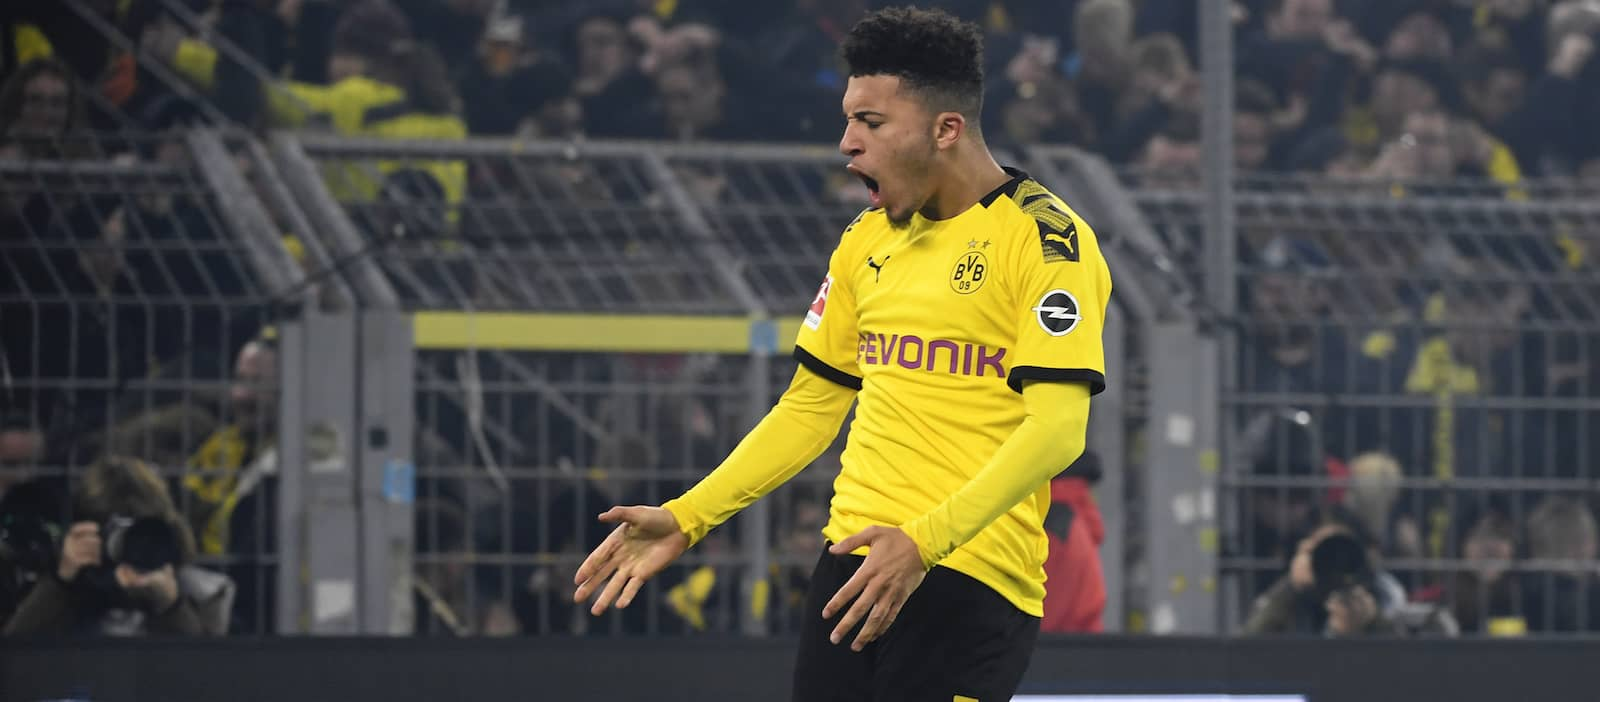 Fabrizio Romano claims the ball is in Jadon Sancho's court over transfer